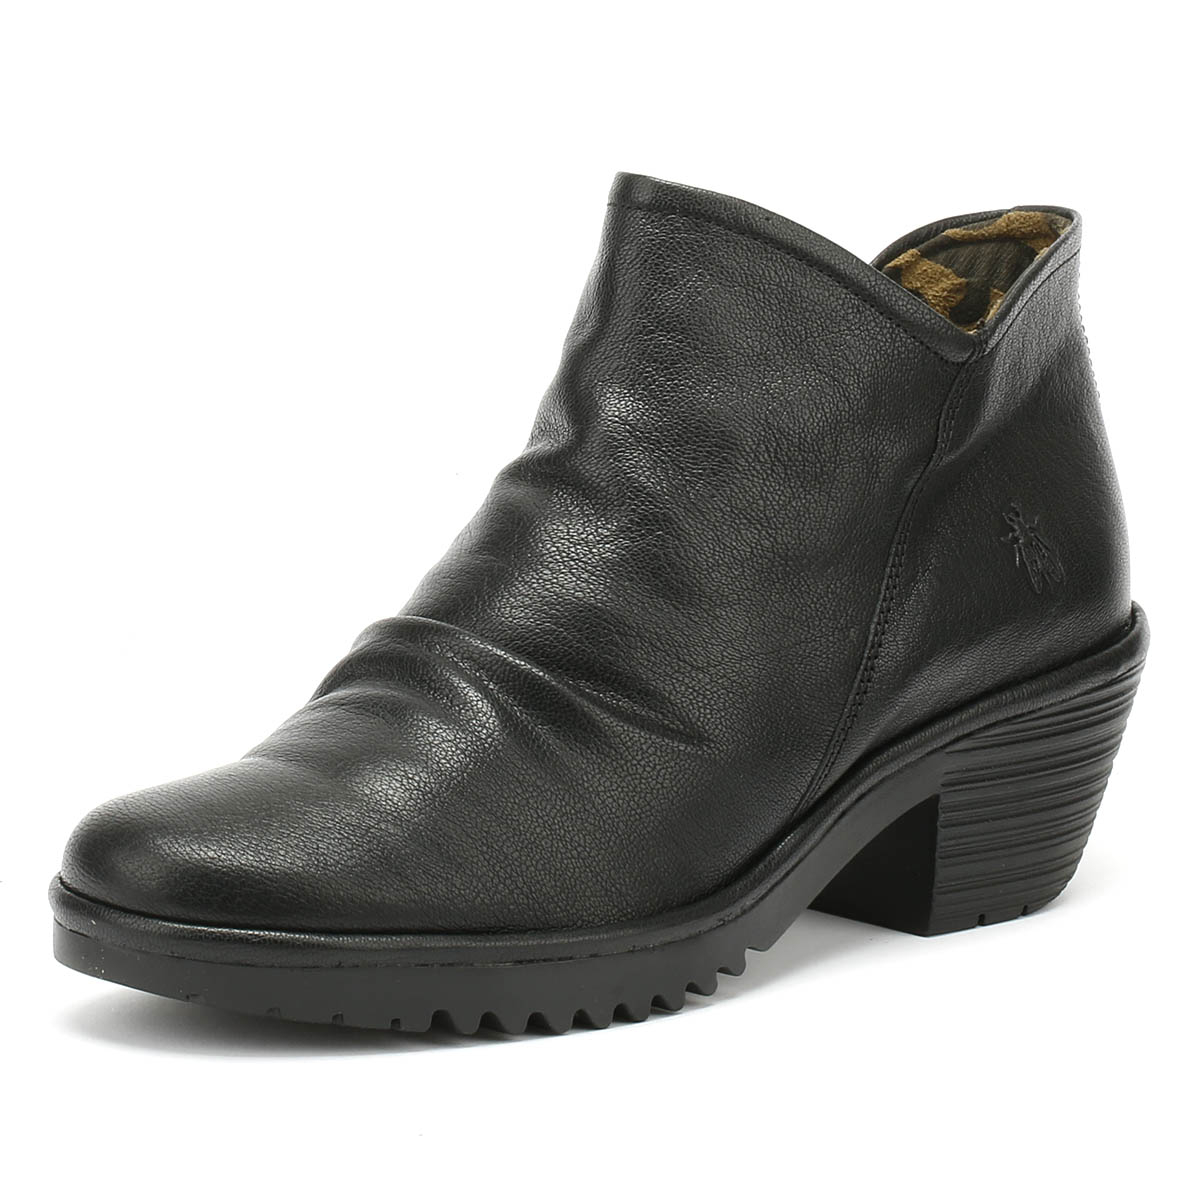 15c0cff87a3 Details about Fly London Womens Boots Black Wezo Mousse Mid Heel Winter  Ankle Shoes